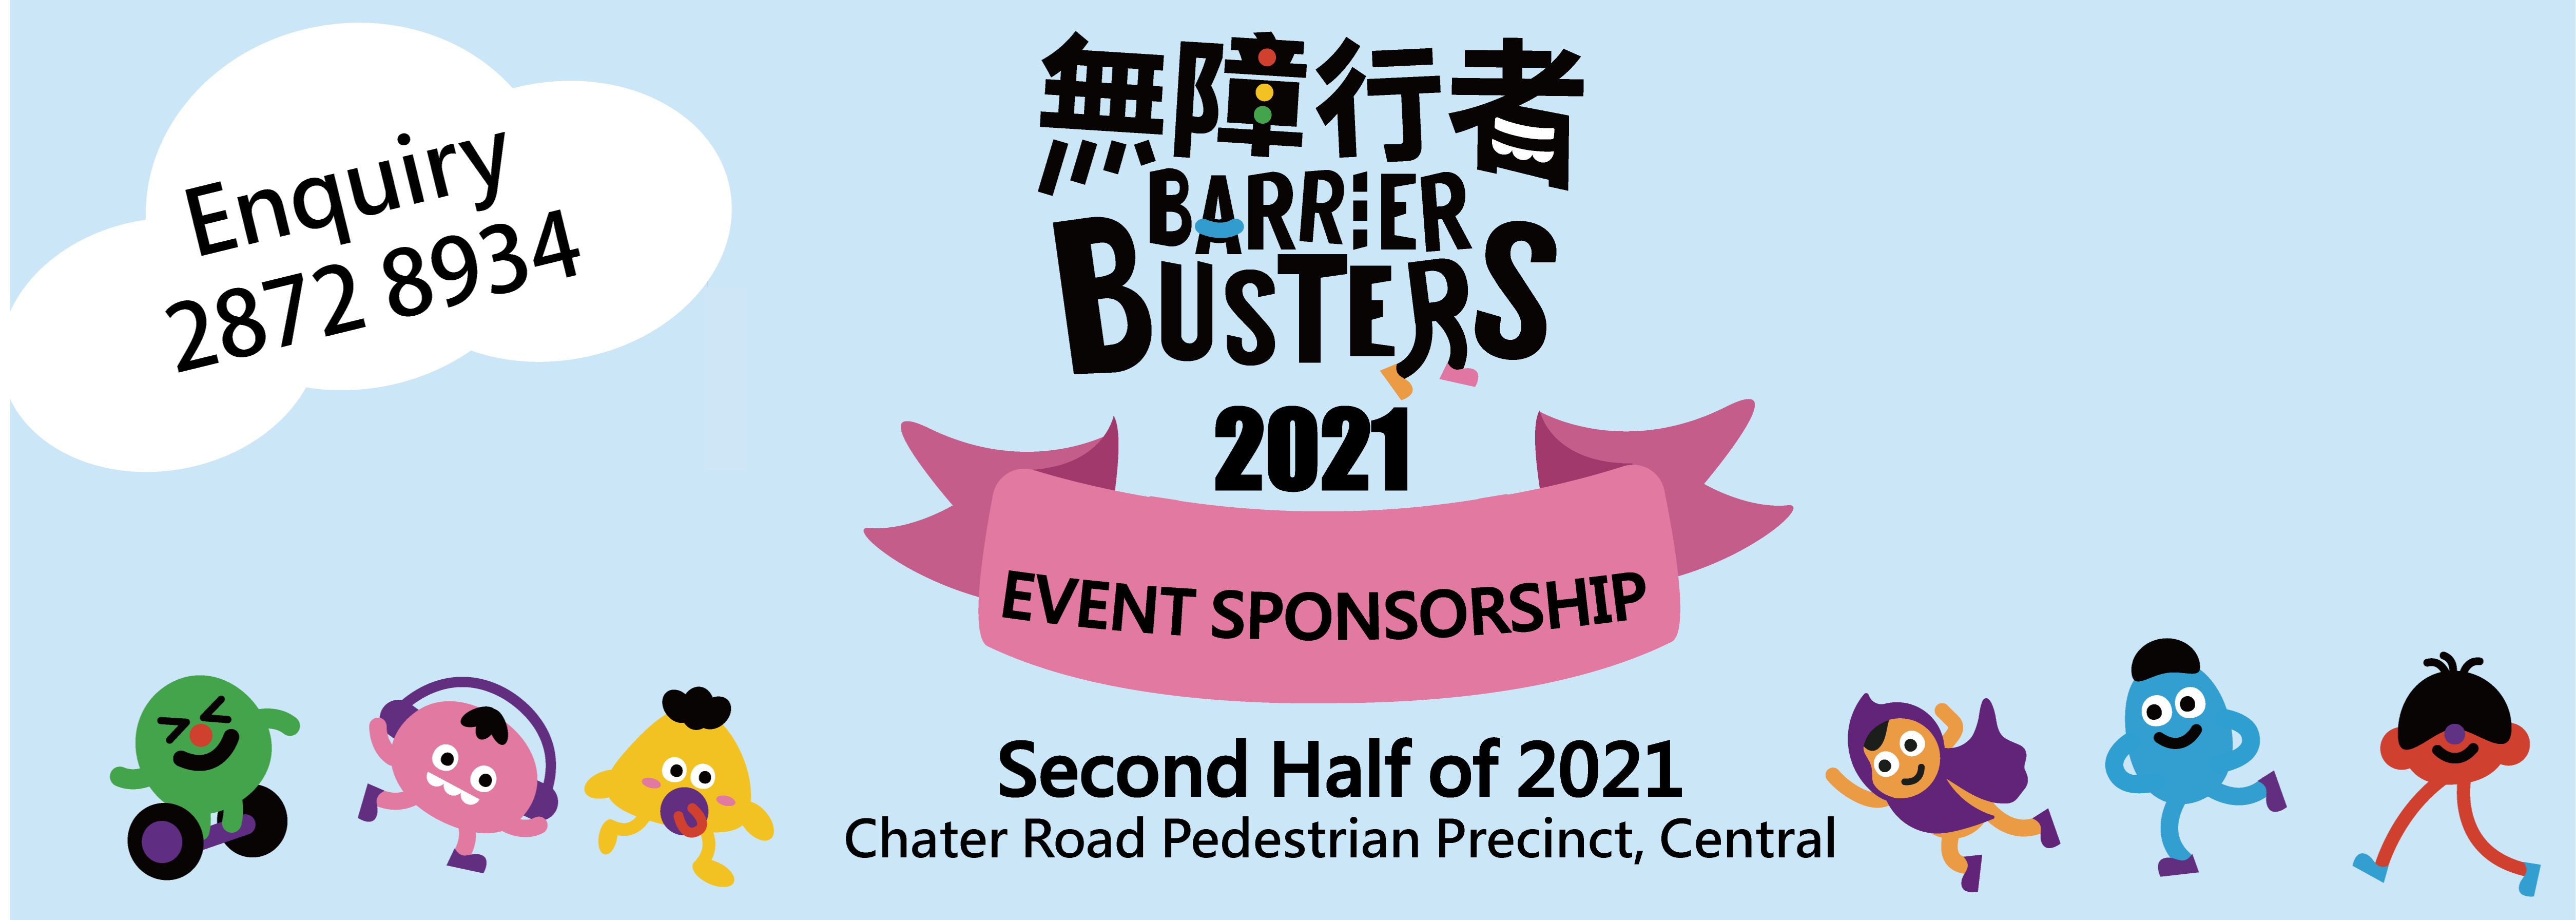 Barrier Busters 2021